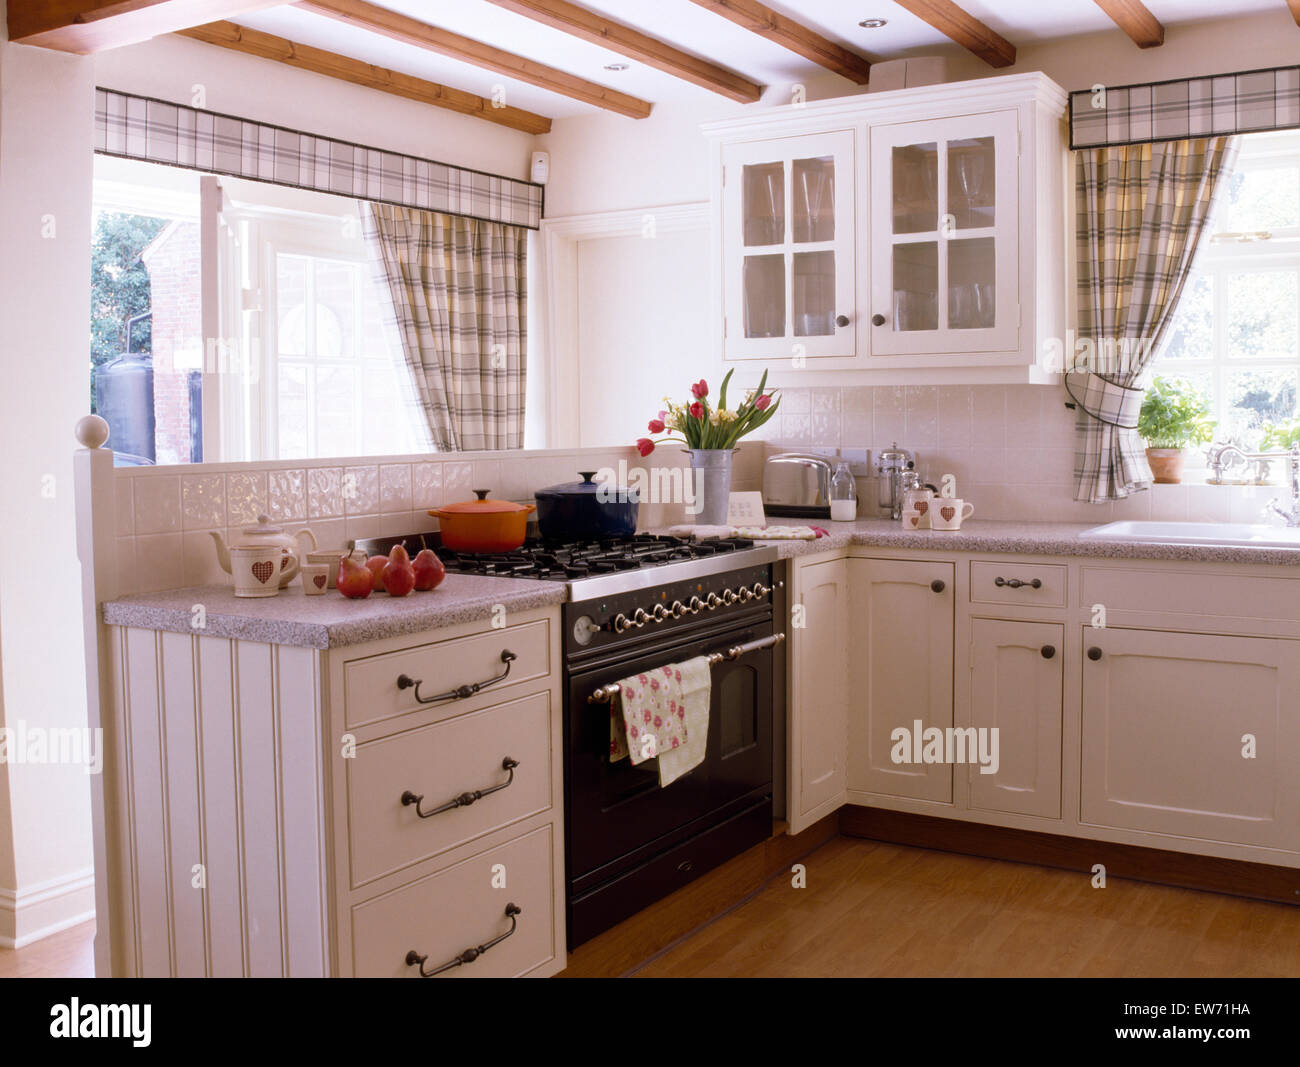 Black Range Oven In White Cottage Kitchen With Gray Checked Curtains Stock Photo Alamy